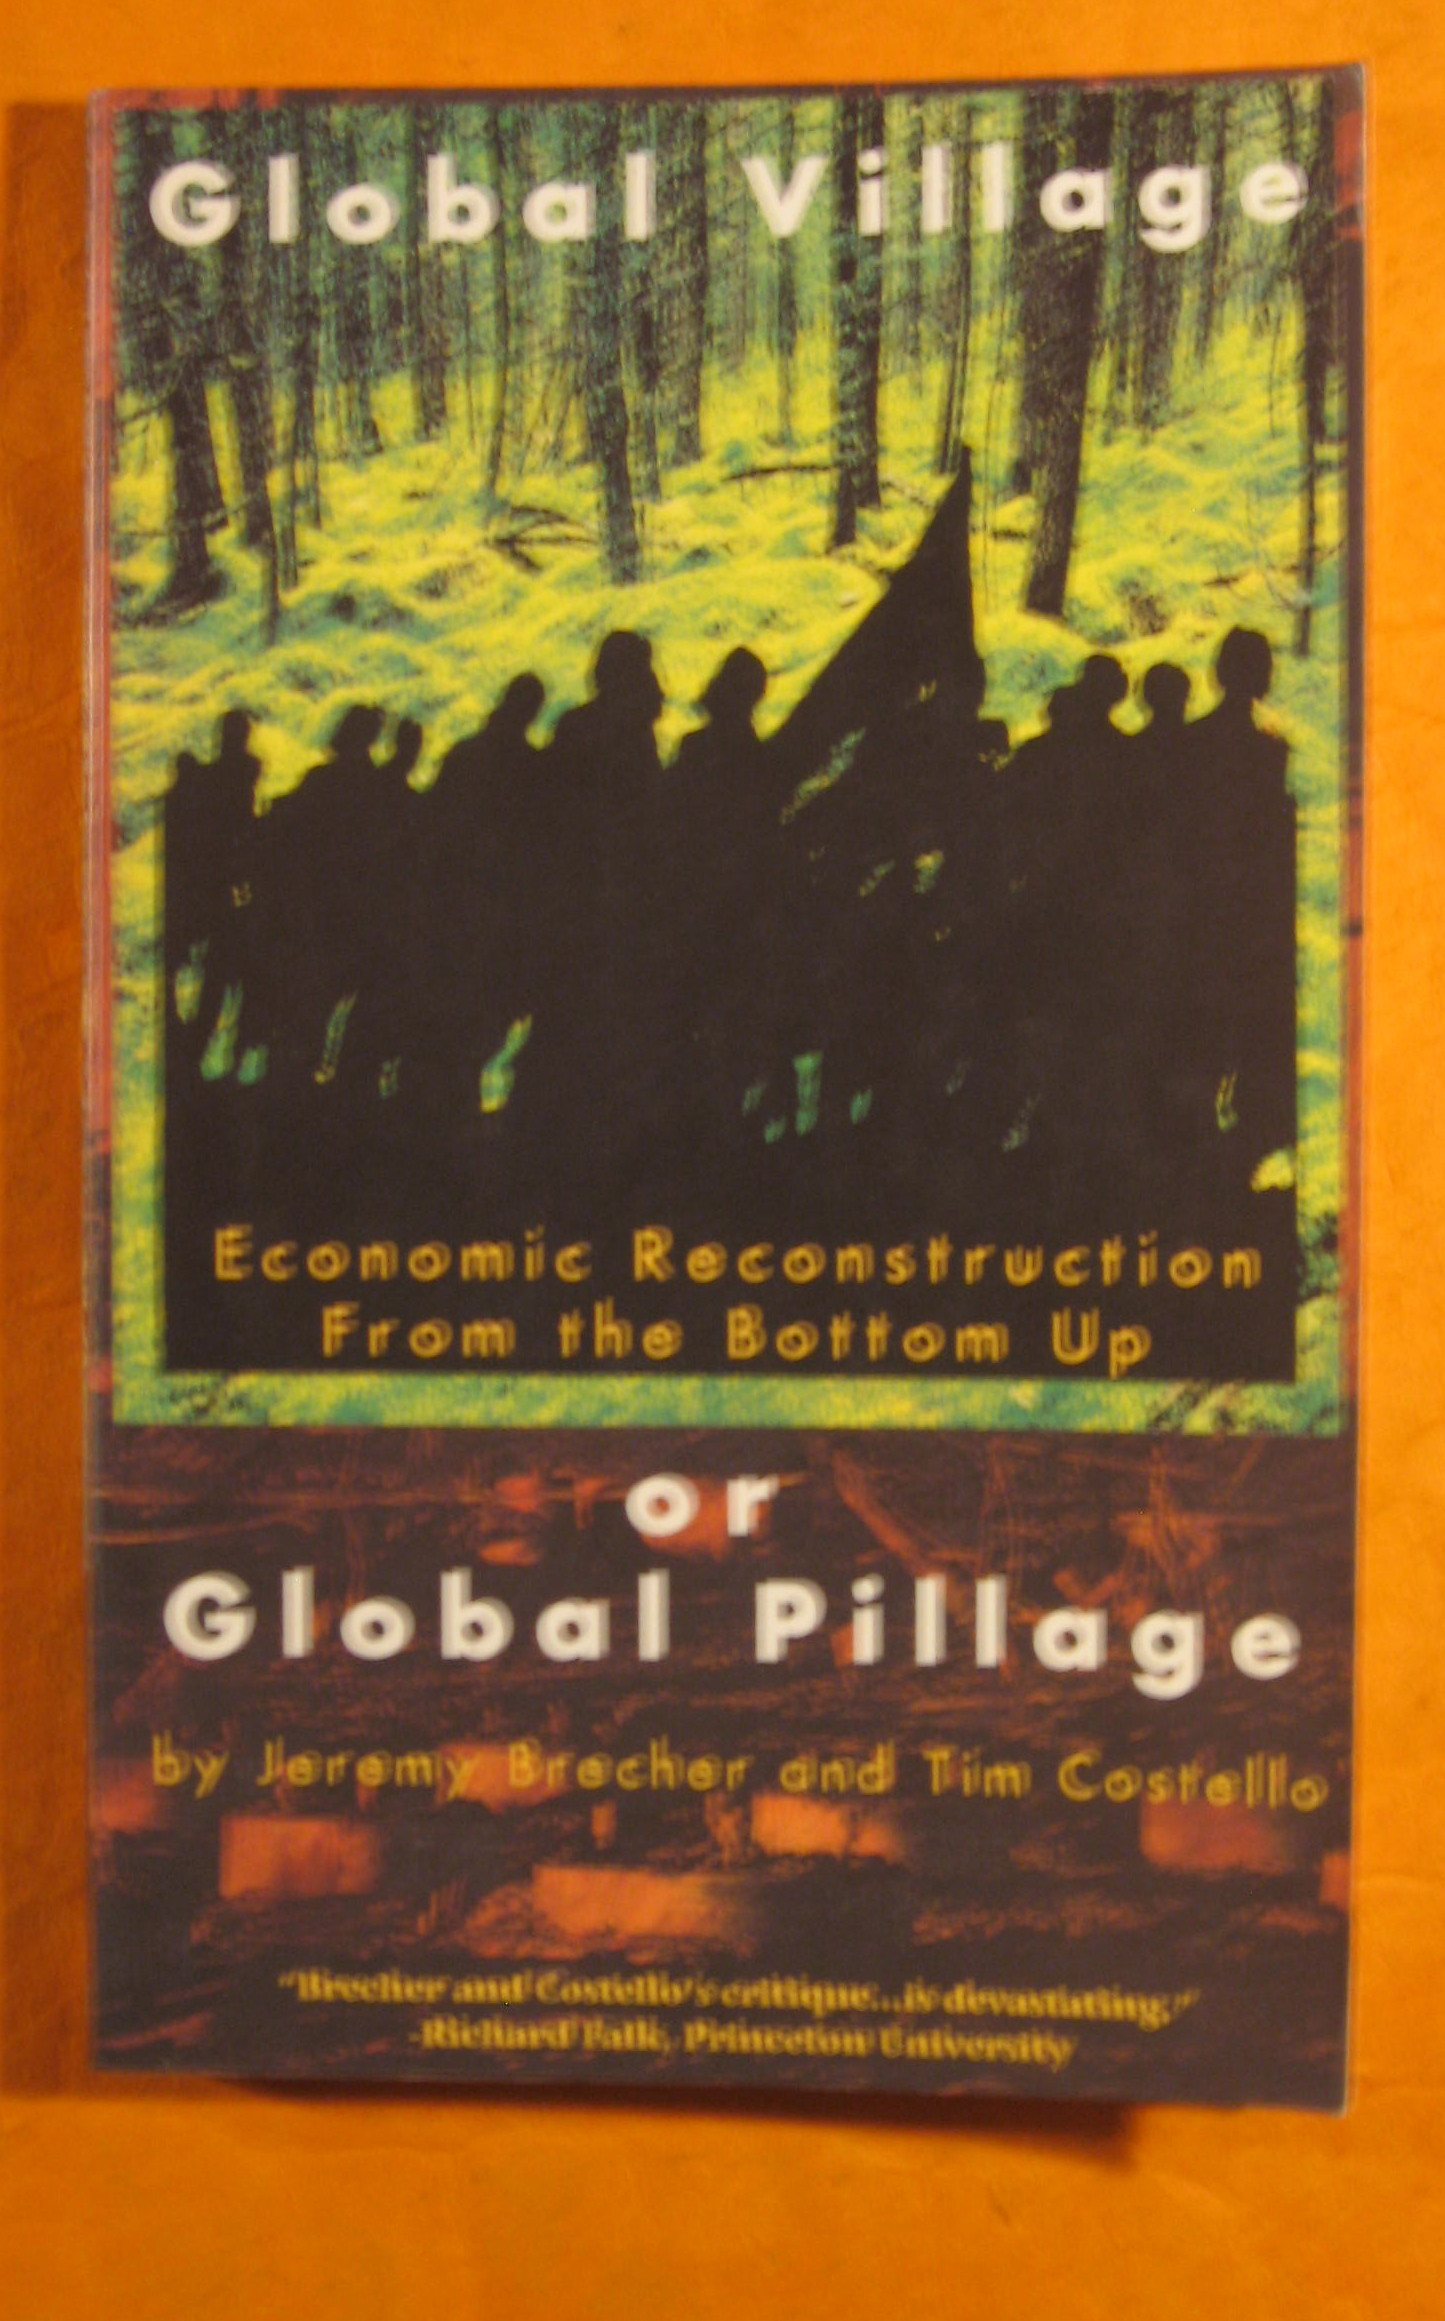 Image for Global Village or Global Pillage: Economic Reconstruction from the Bottom Up